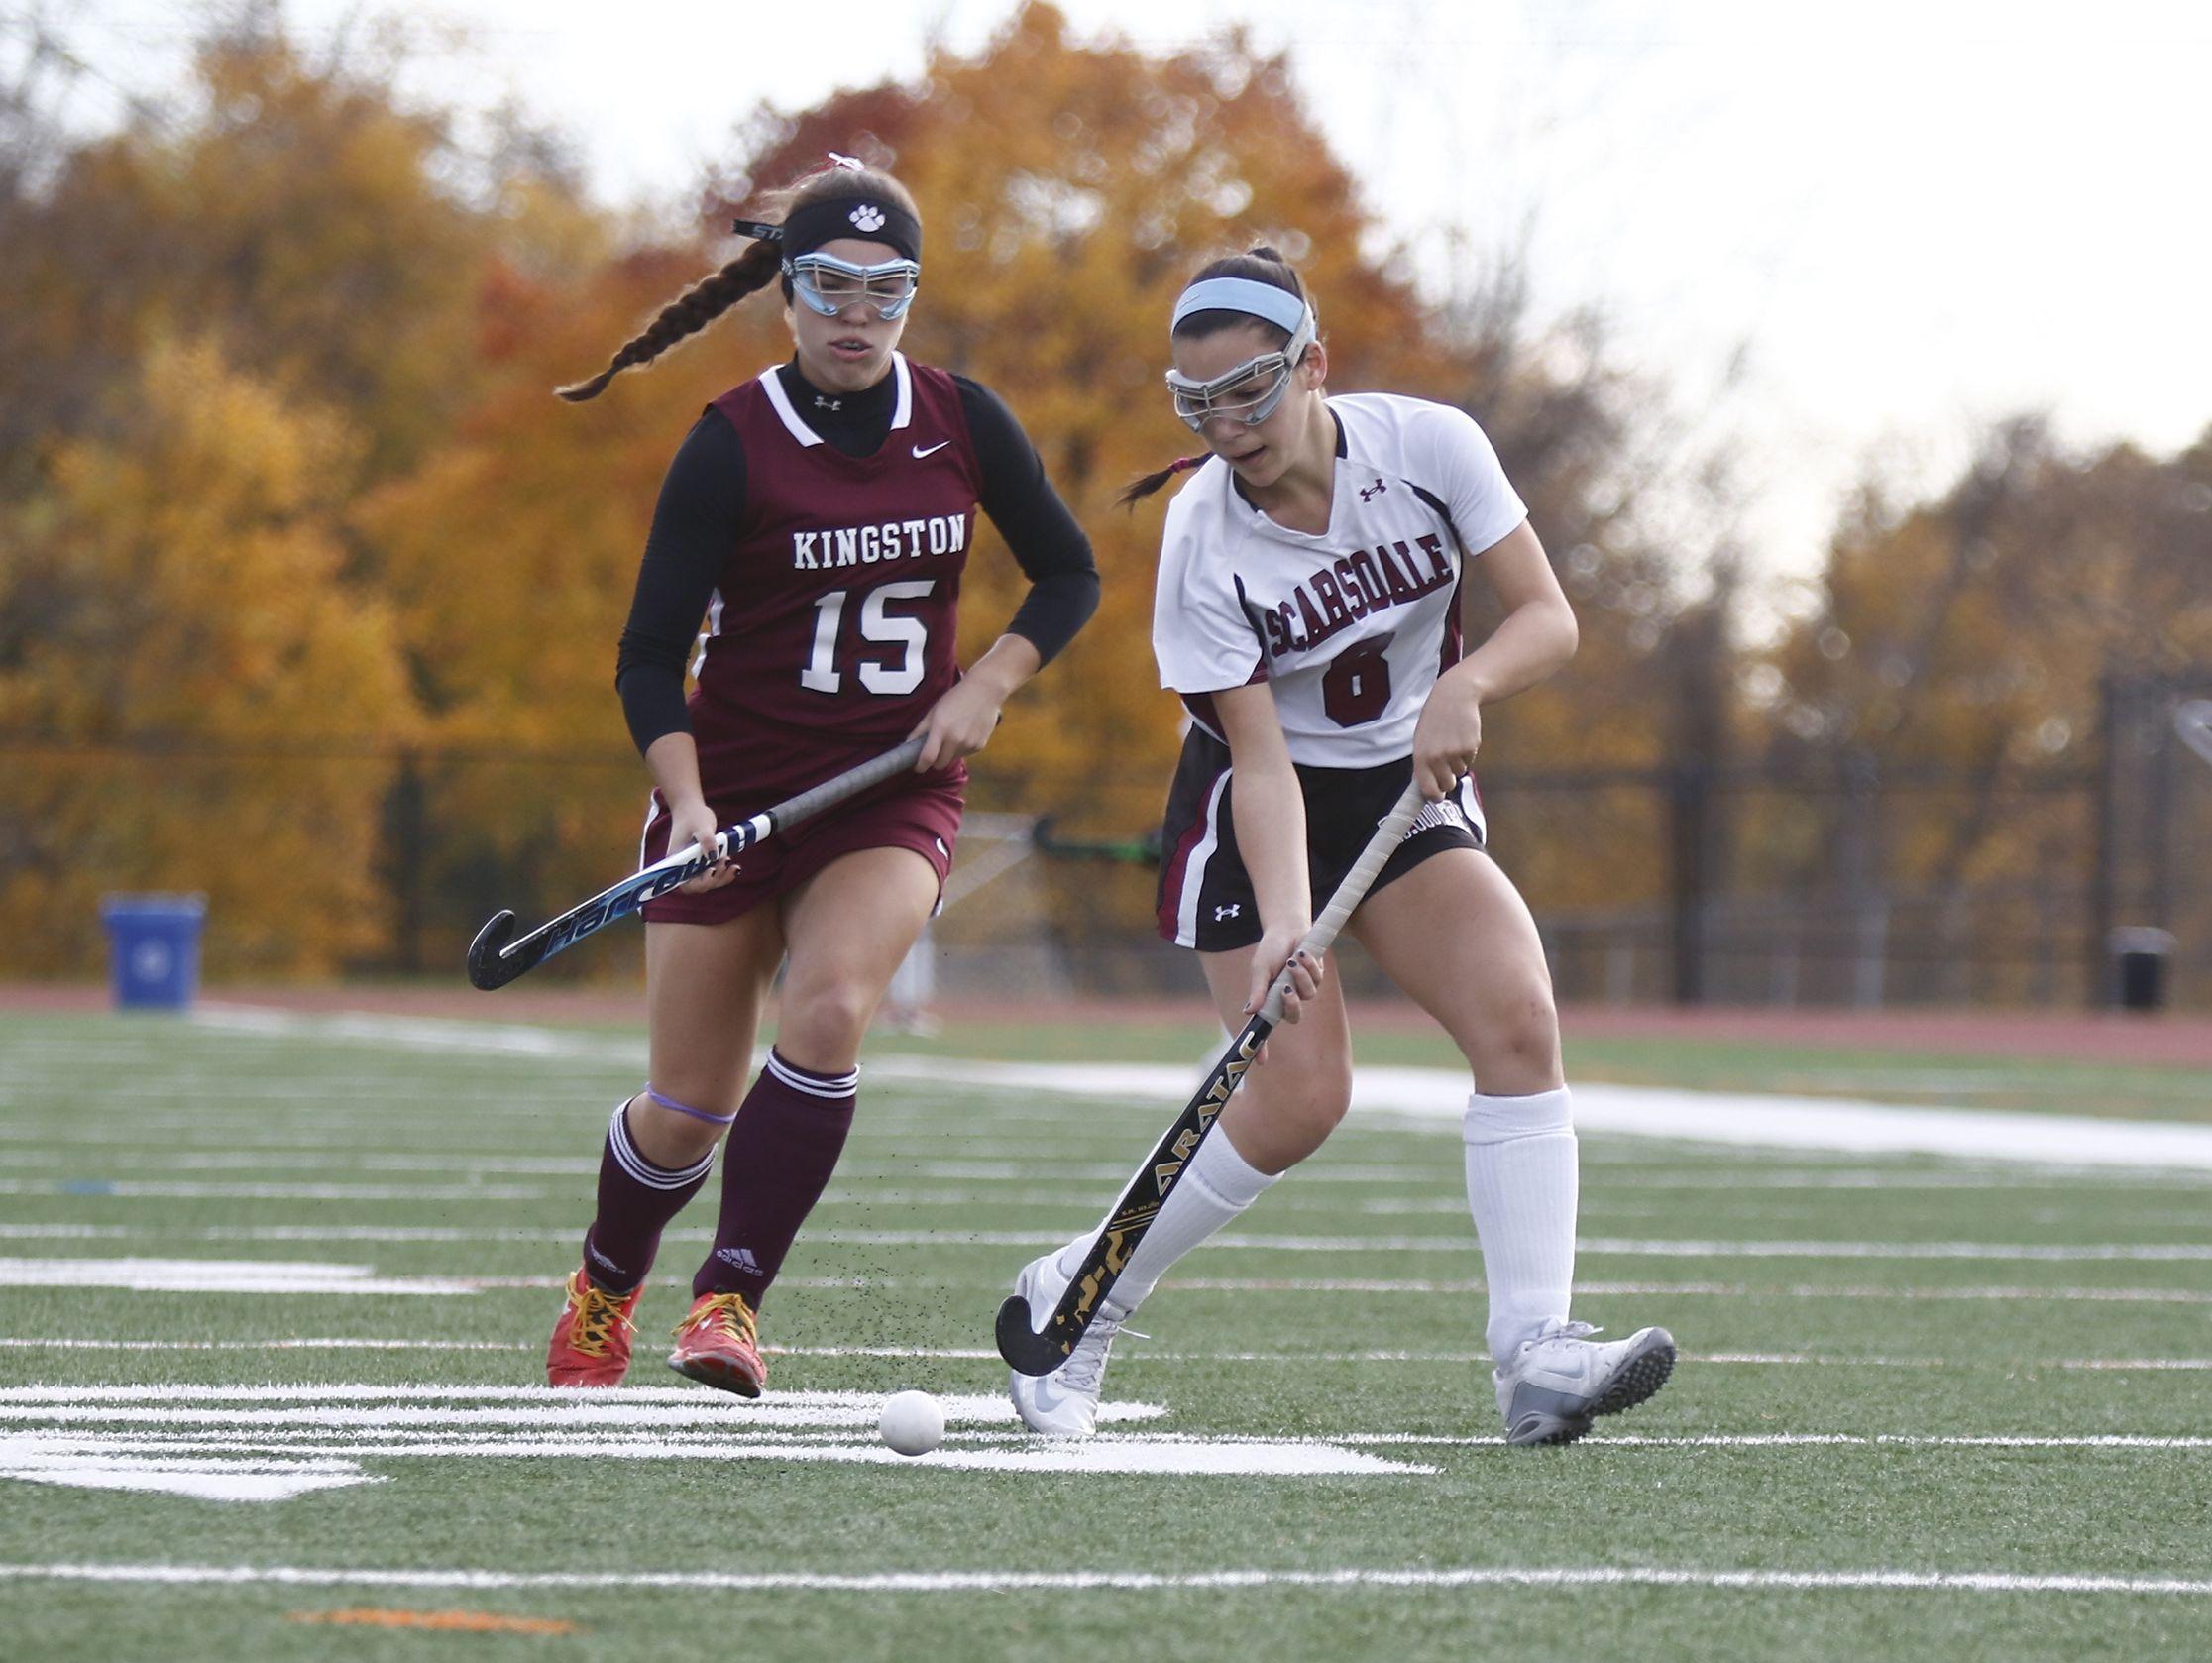 Scarsdale's Emma Schwartz (8)works past Kingston's Angela Van Pelt (15) during their 5-0 win in the Class A regional championship field hockey game at Valhalla High School on Saturday, November 5, 2016.